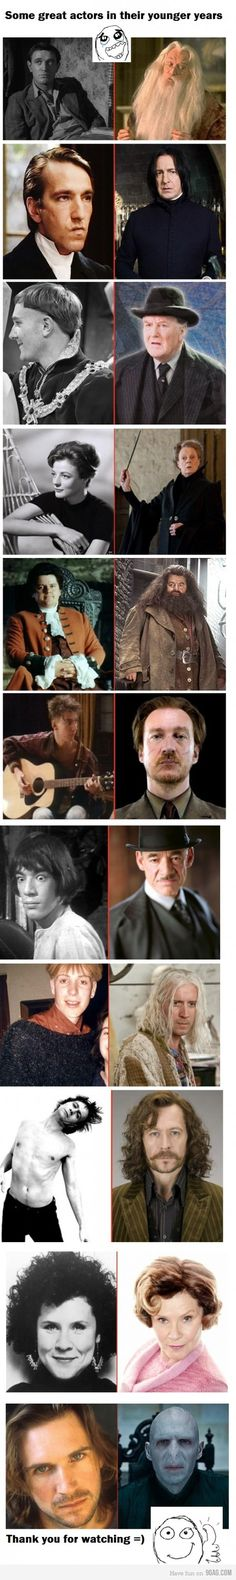 Harry Potter's adult actors in their younger years. Original Dumbledore was kinda hot back in the day, and of course Ralph Fiennes. And McGonagall was gorgeous, and Umbridge quite pretty as well.